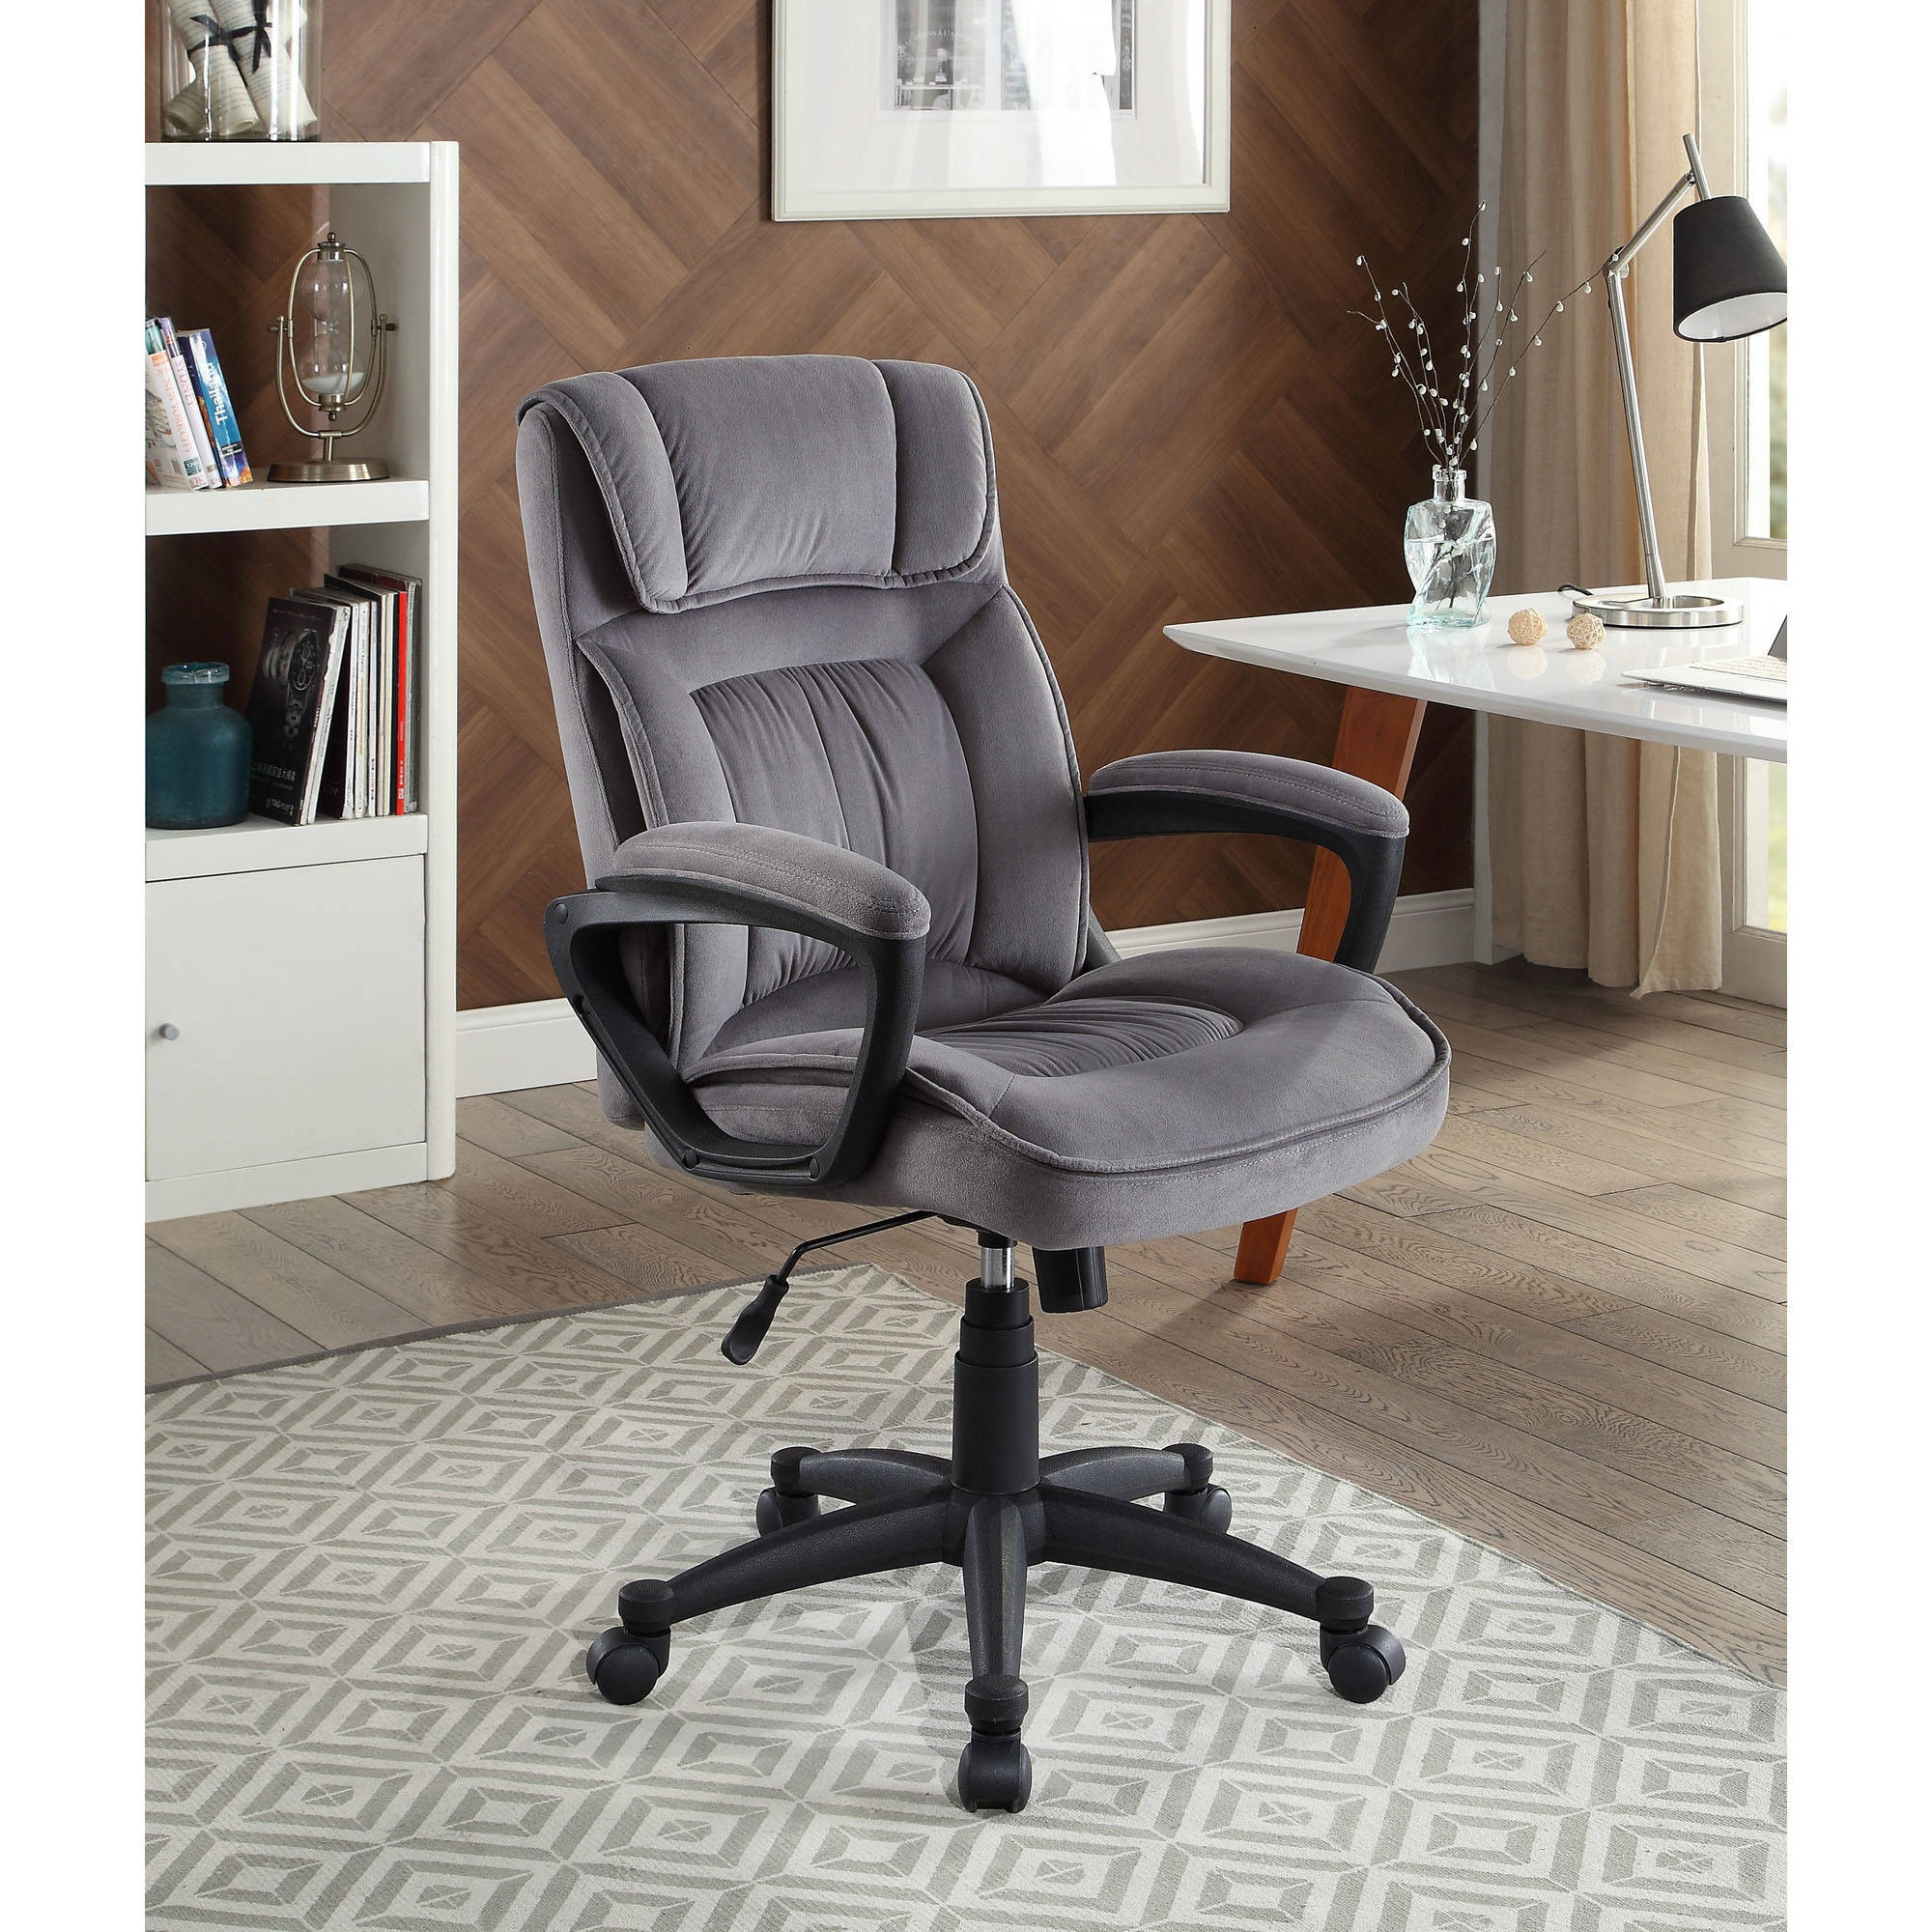 Serta Executive fice Chair in Velvet Gray Microfiber Black Base